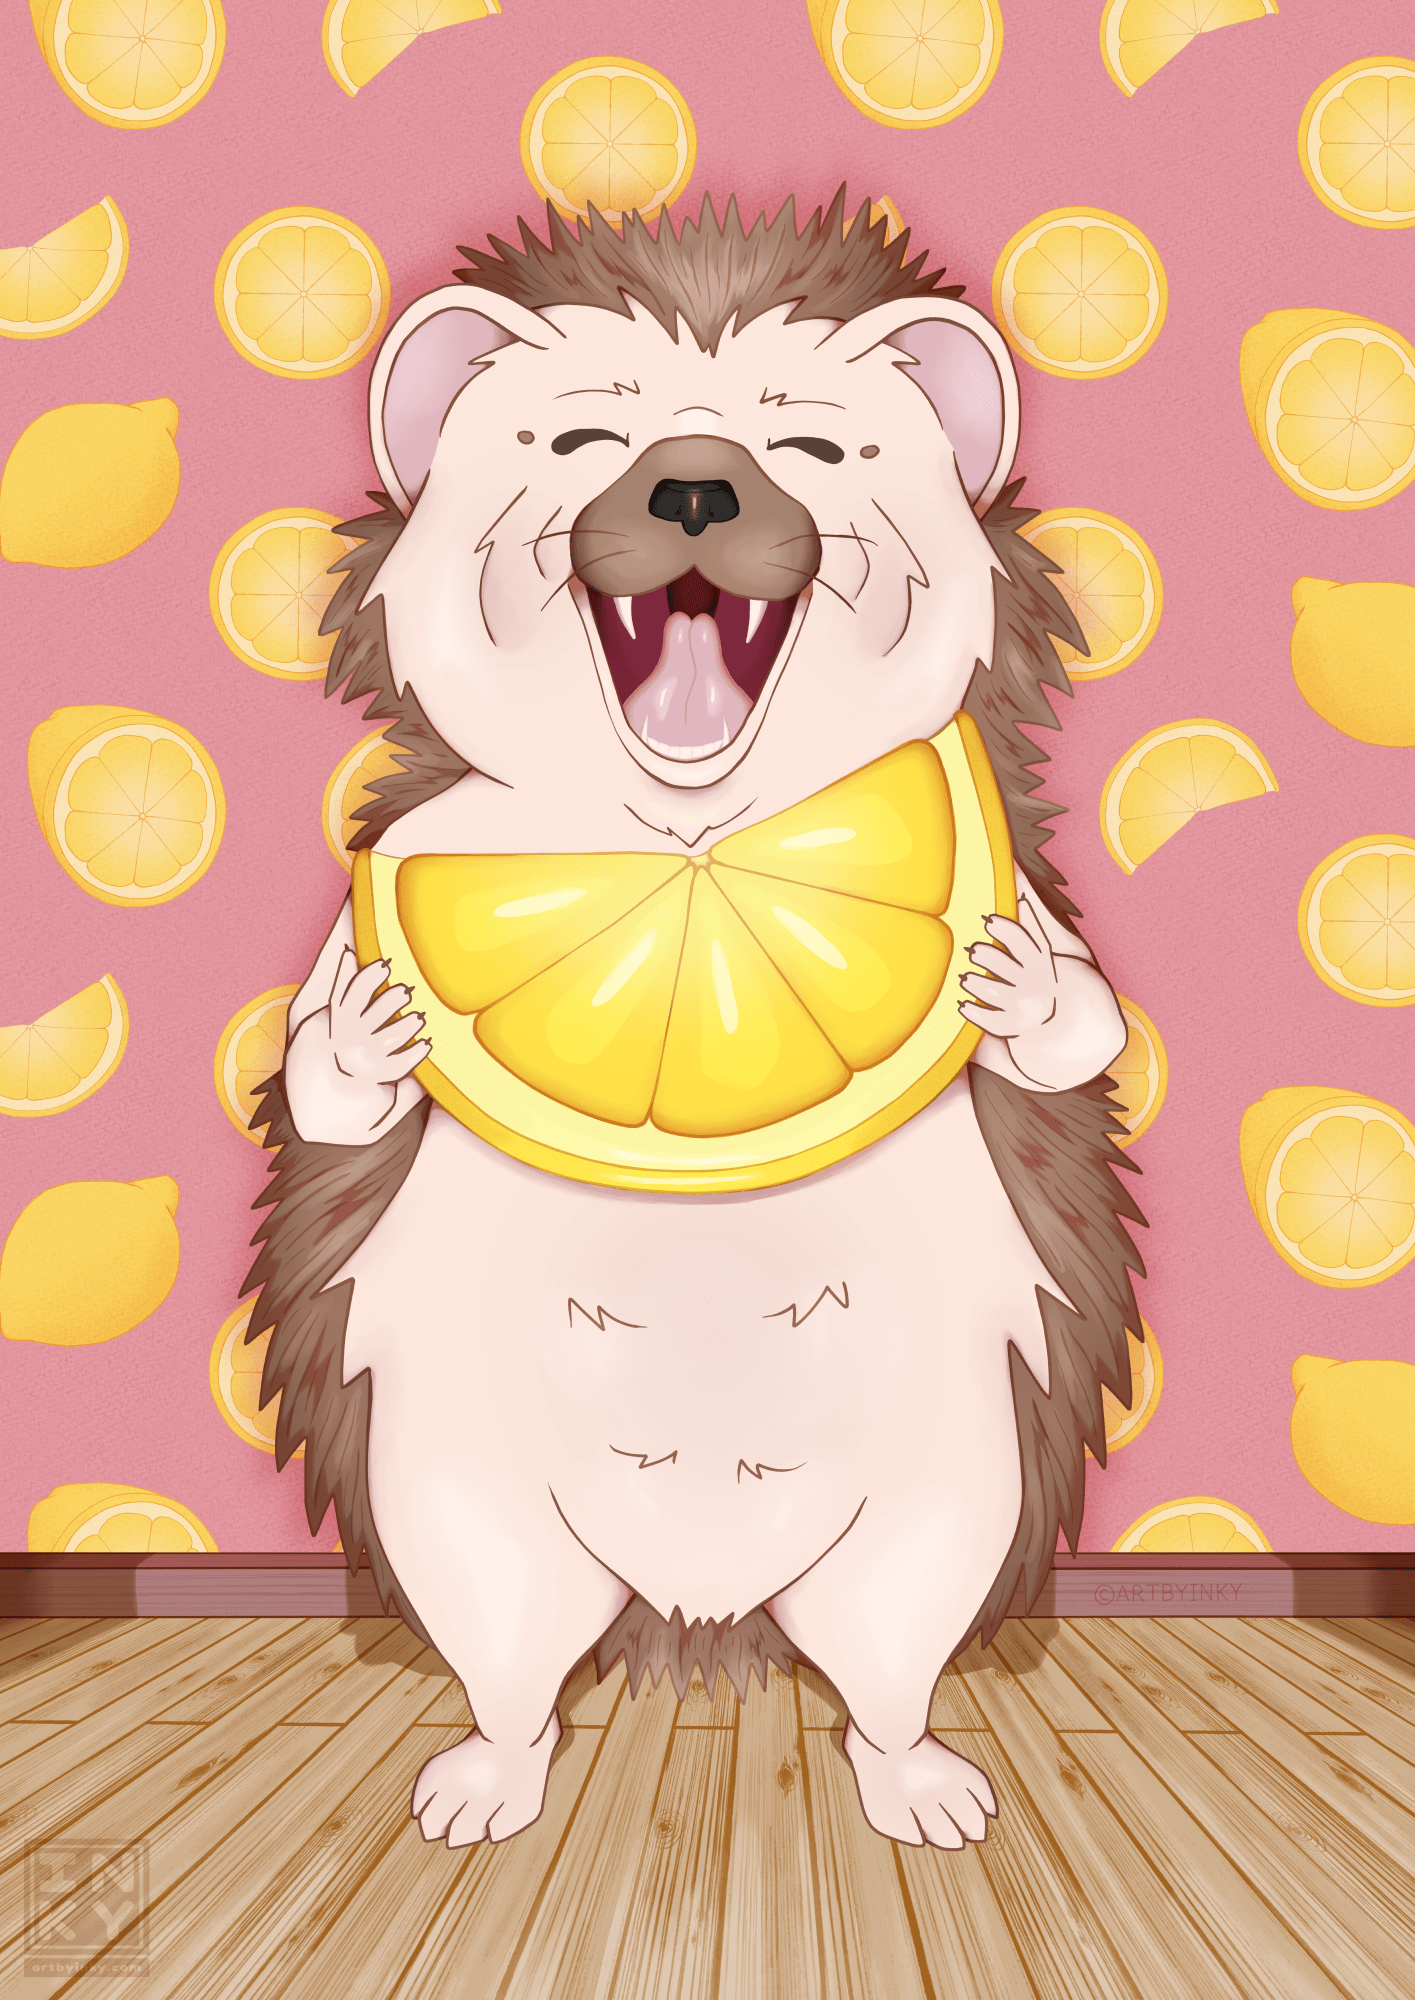 A hedgehog character in a room eating a lemon created by Aleesha Lindstrom.